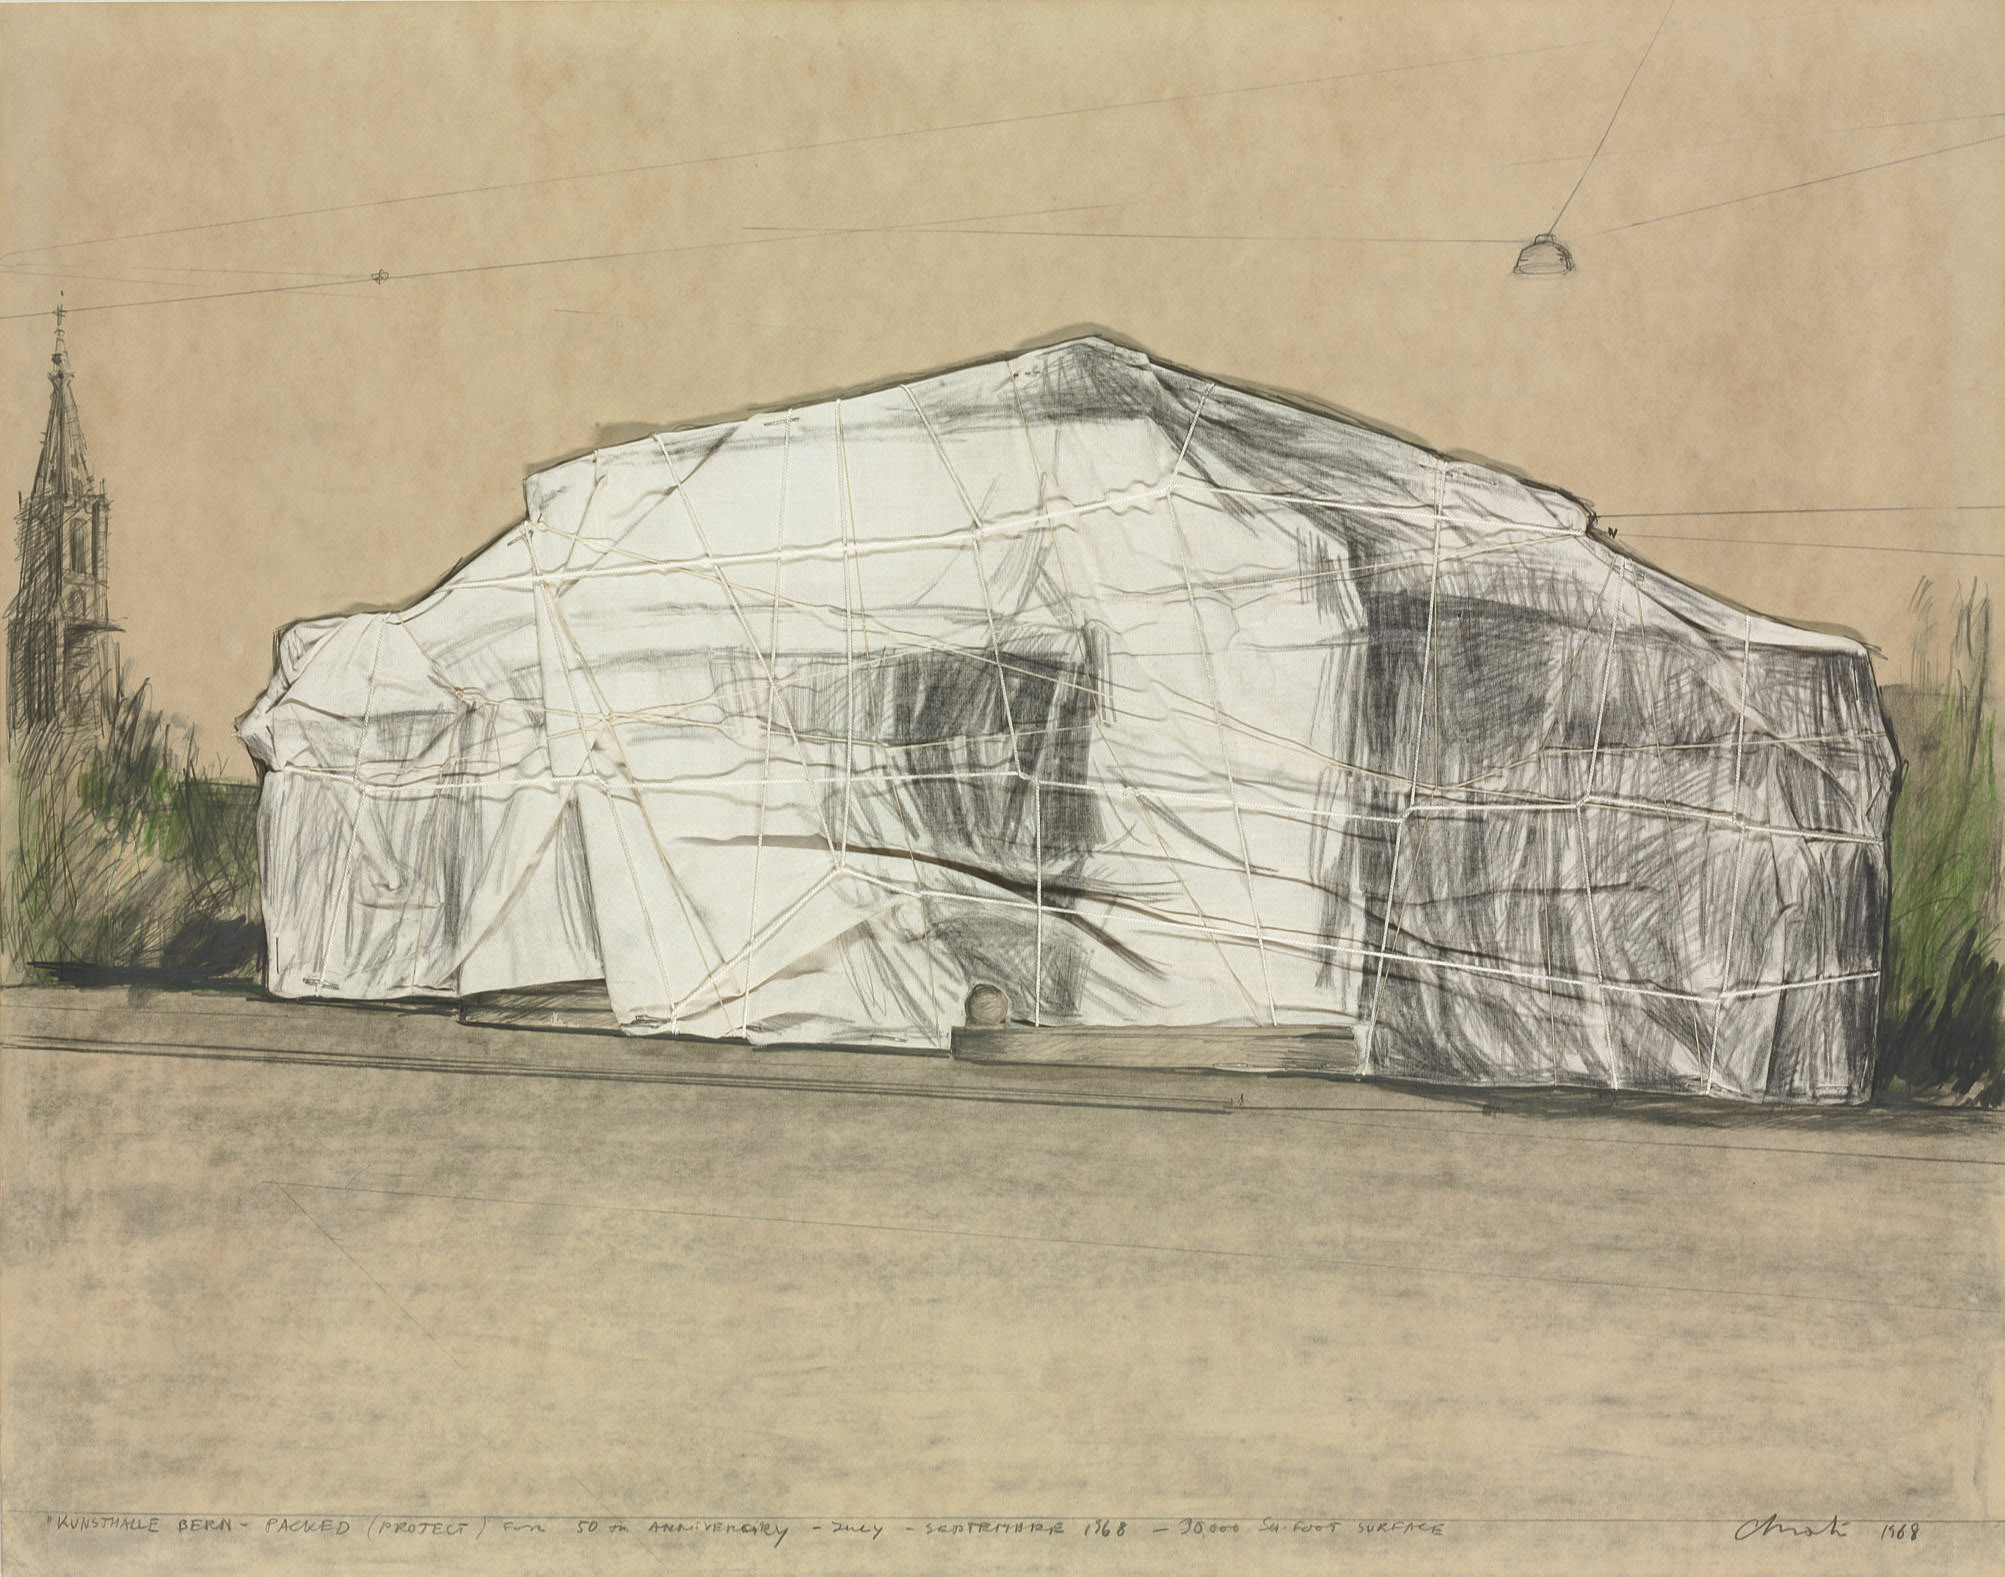 Christo B 1935 Kunsthalle Bern Packed Project For 50th